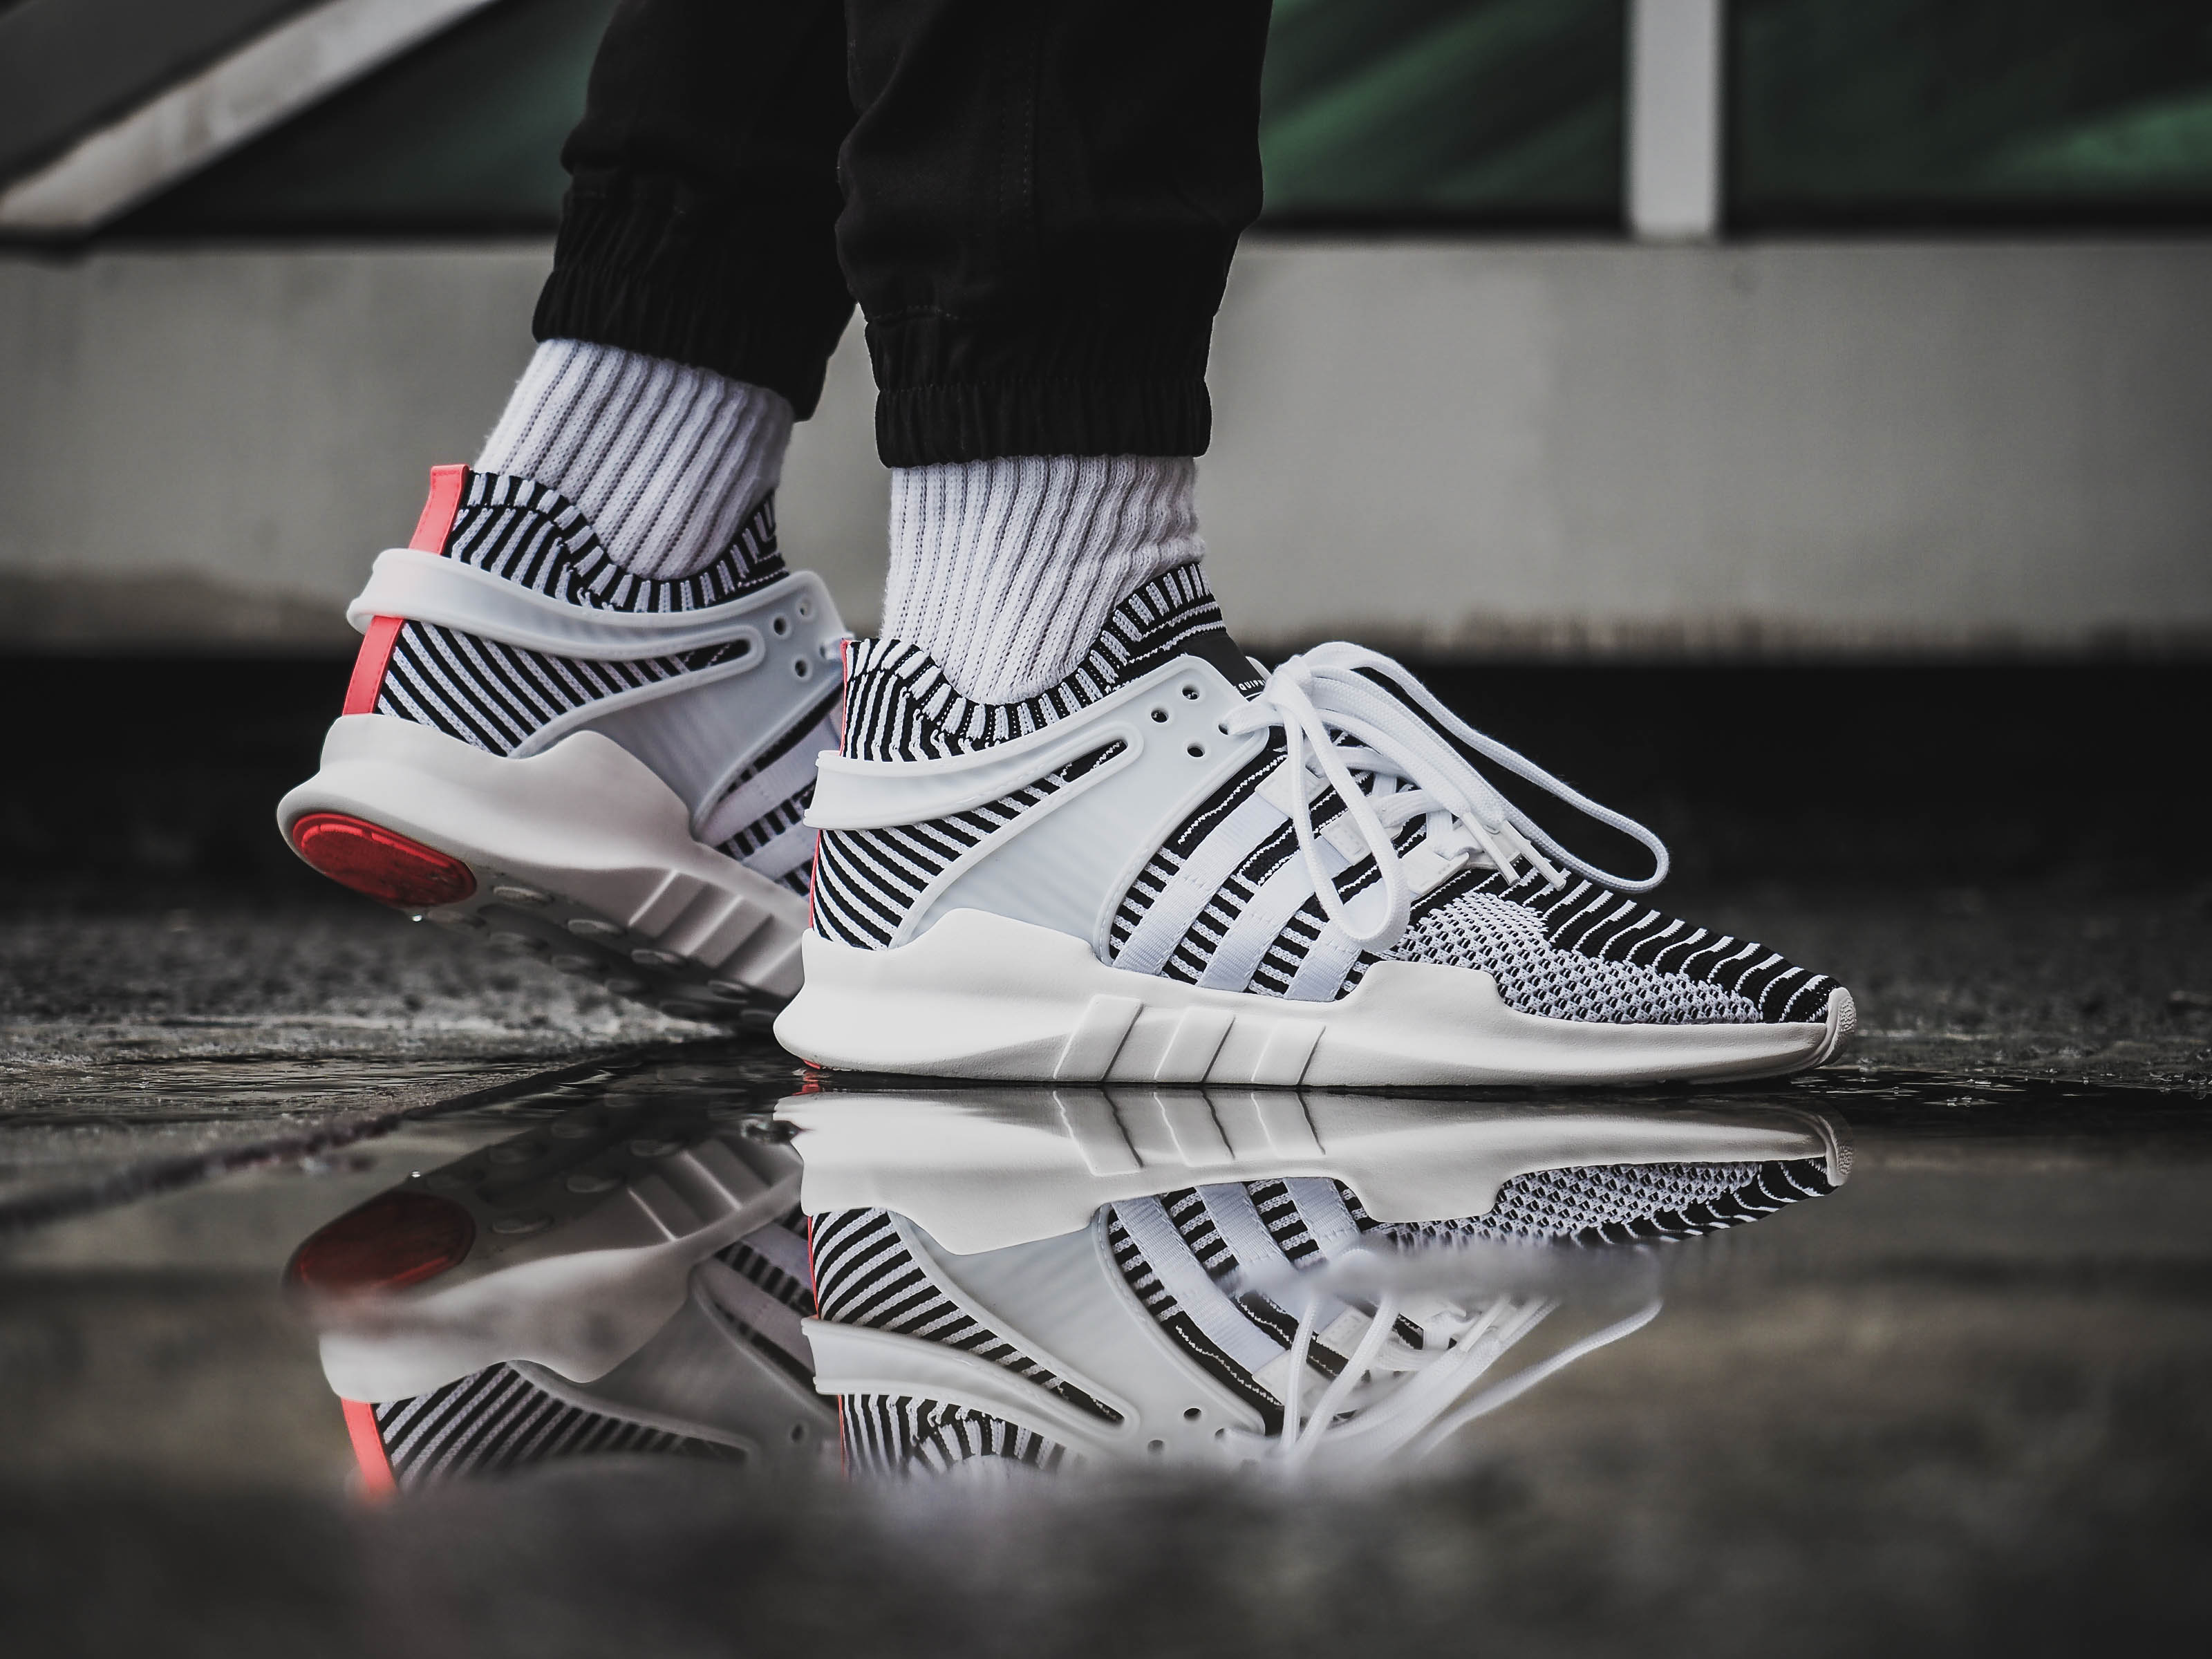 Adidas Eqt Support Adv Floating